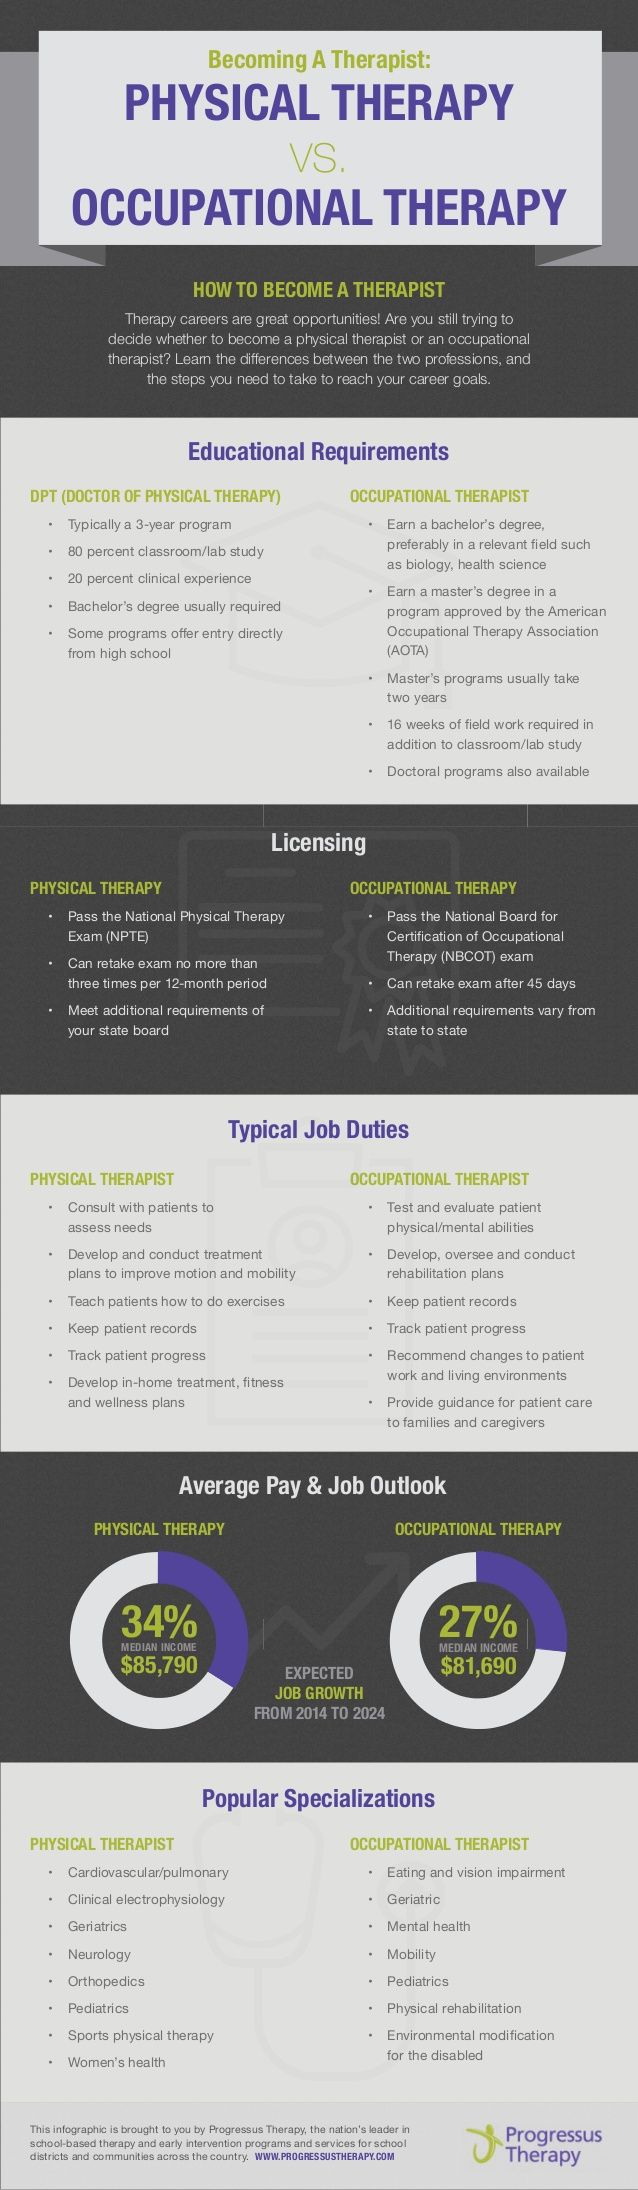 The numbers don't lie! Becoming a Therapist: Physical Therapy vs. Occupational Therapy